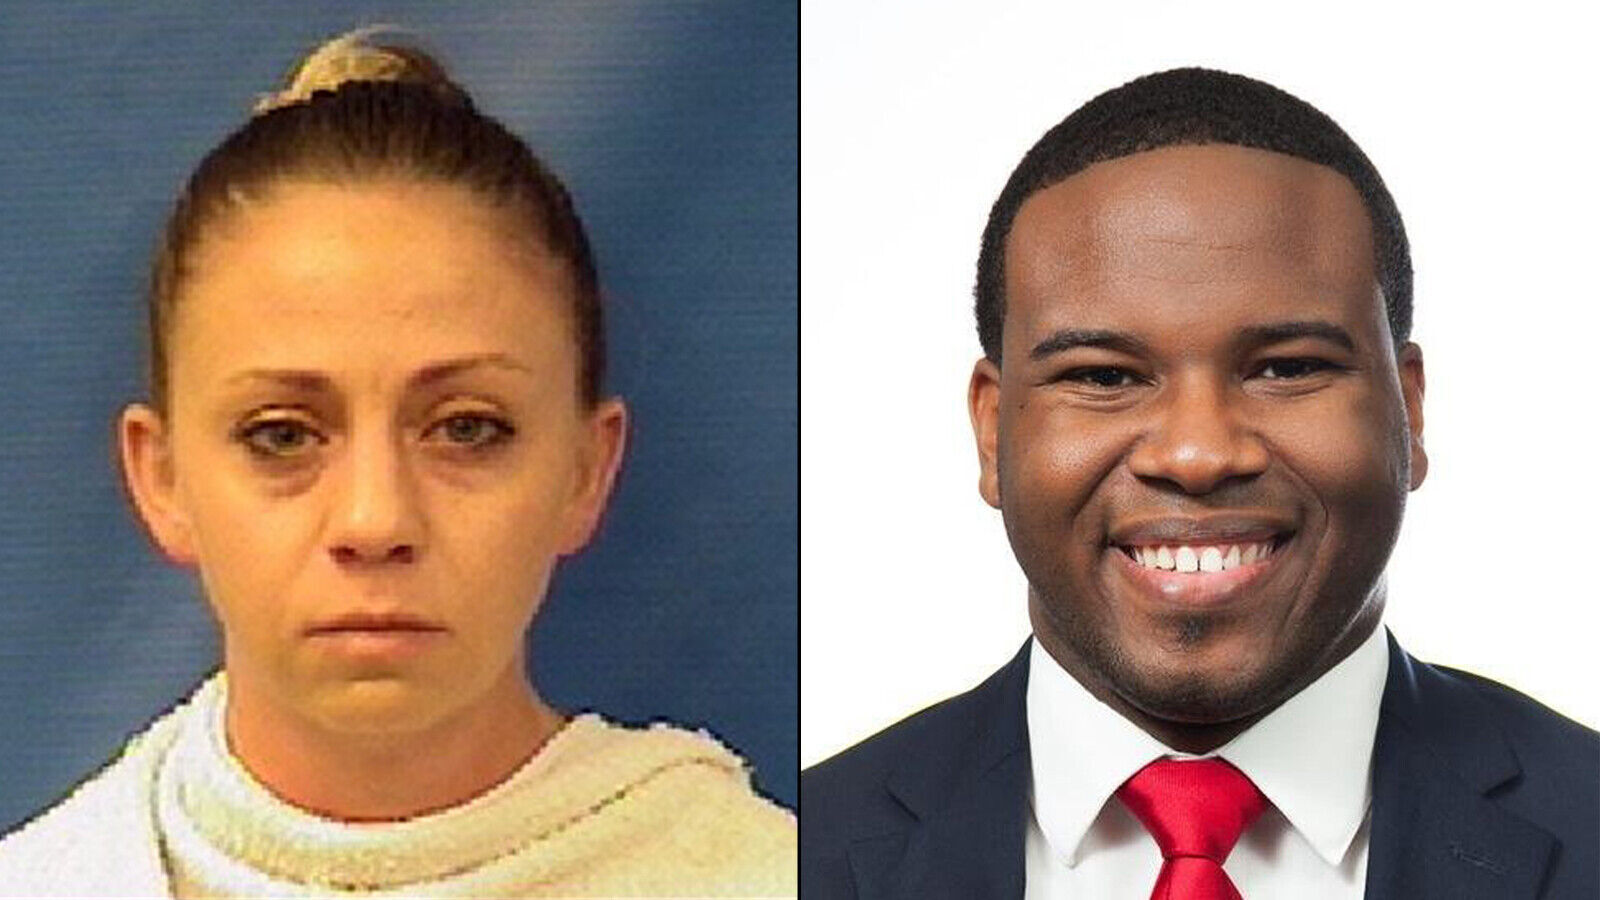 Former Dallas police officer Amber Guyger asks appeals court to throw out murder conviction for killing Botham Jean 6